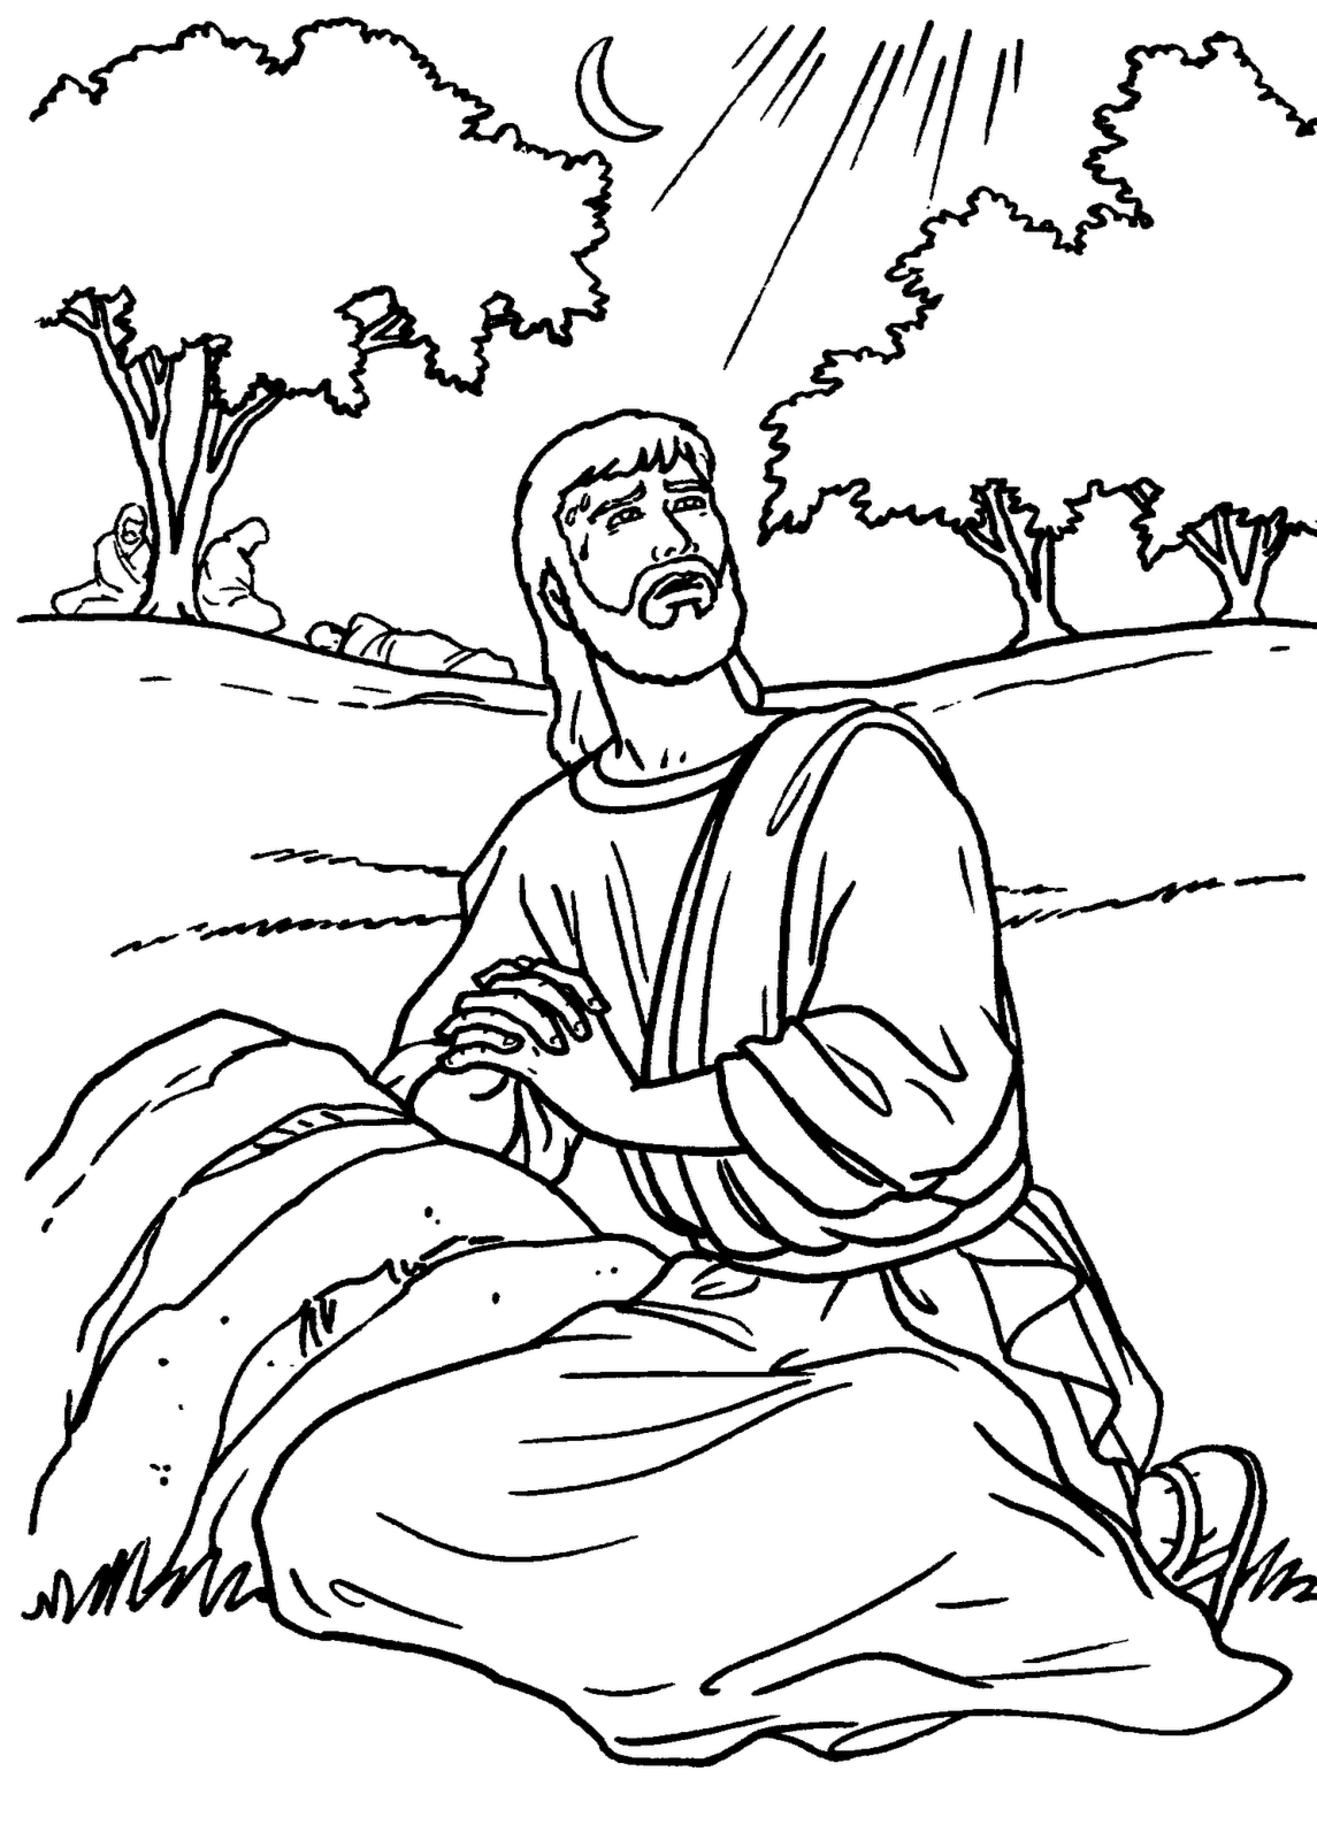 Jesus praying in the garden | Coloring Pages 3 | Pinterest ...